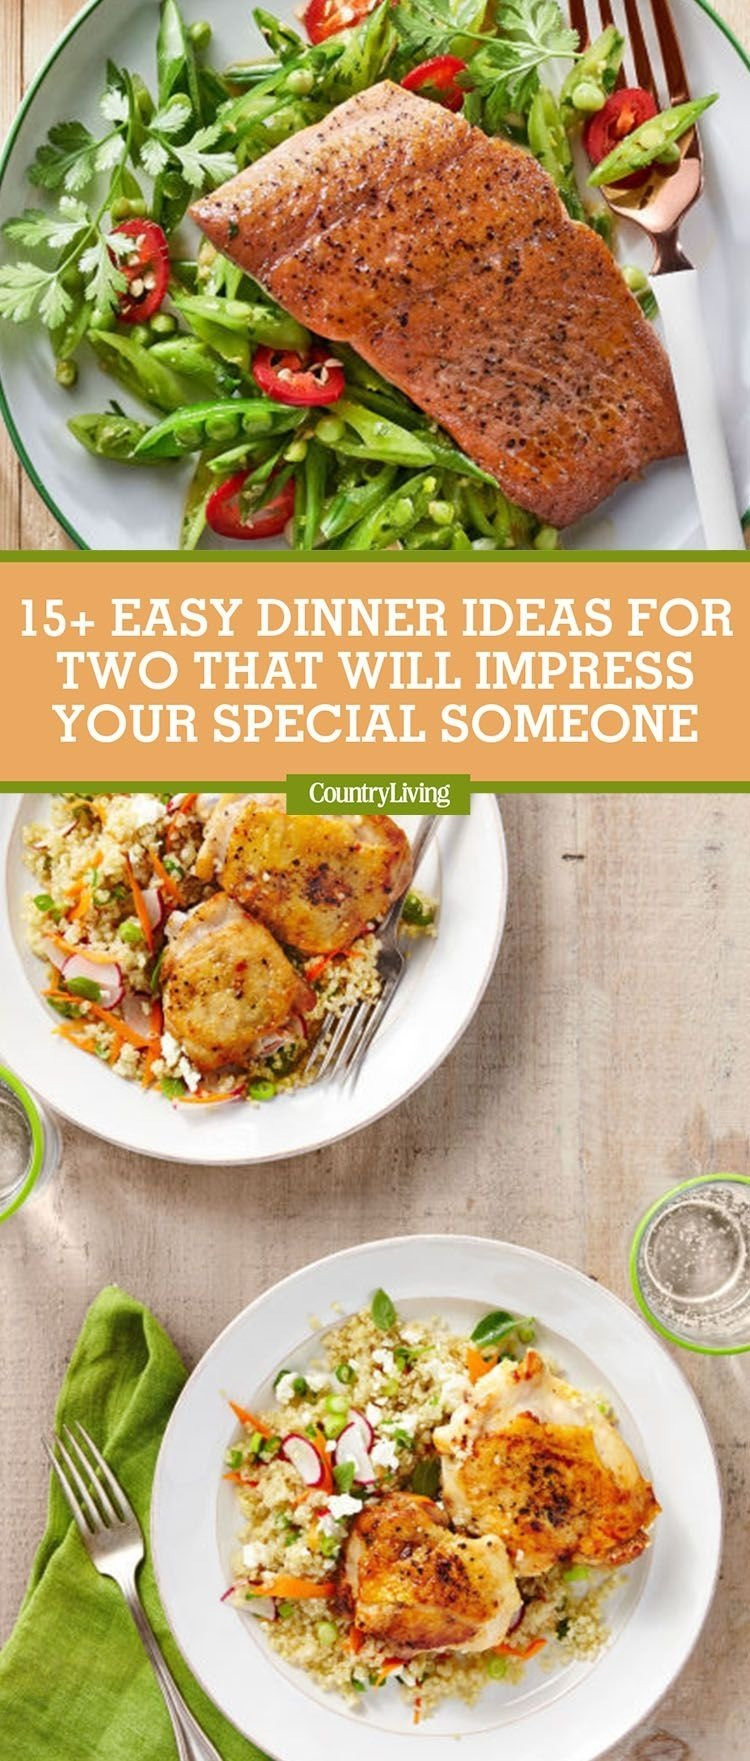 10 Stylish Great Dinner Ideas For Two 17 easy dinner ideas for two romantic dinner for two recipes 5 2020